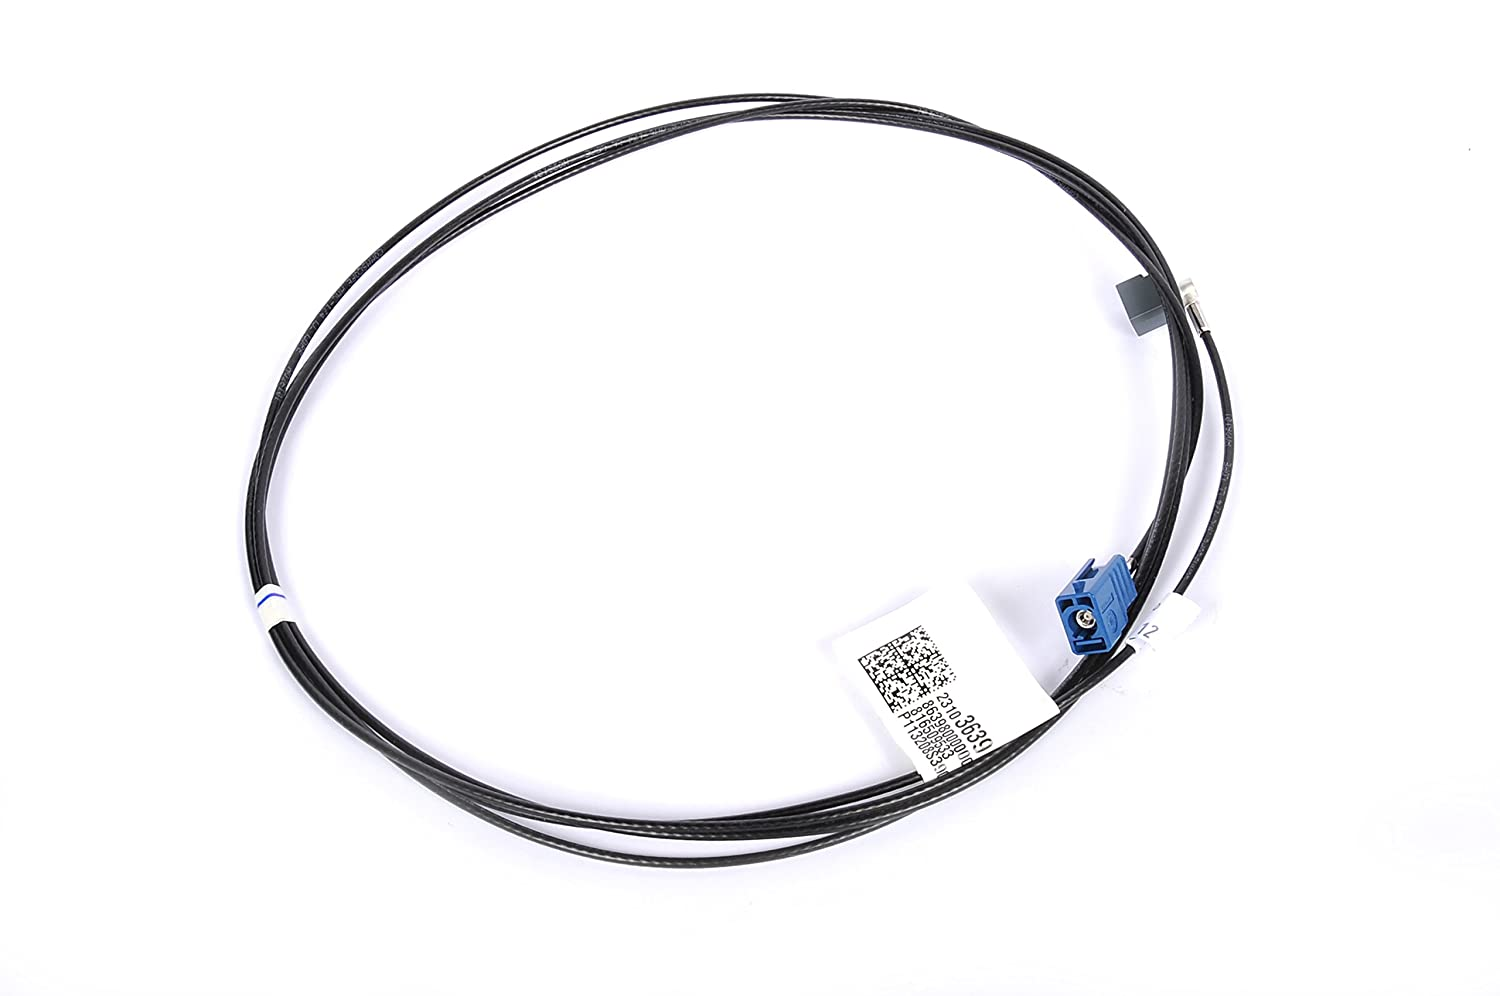 ACDelco 23103639 GM Original Equipment Mobile Telephone and GPS Navigation Antenna Coax Cable